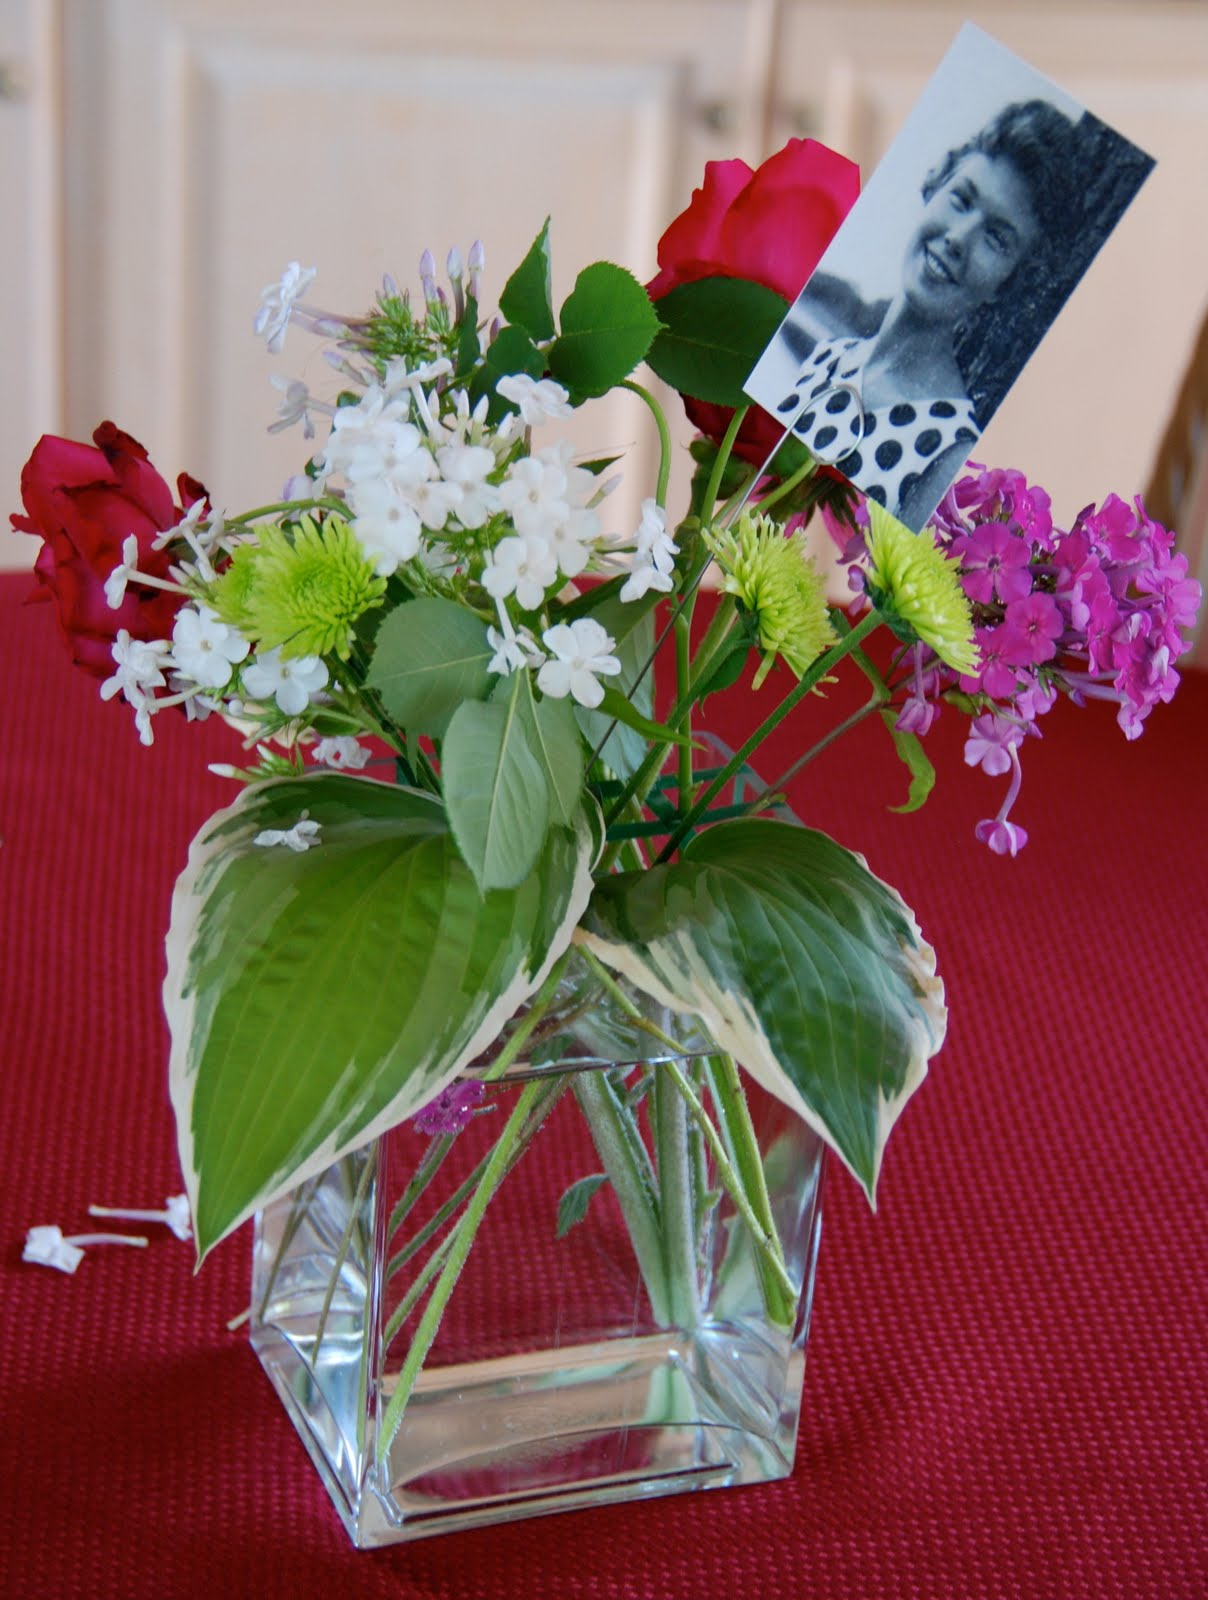 Pin 80th Birthday Party Centerpiece Ideas Httpsimplegirlathomeblogspot ...